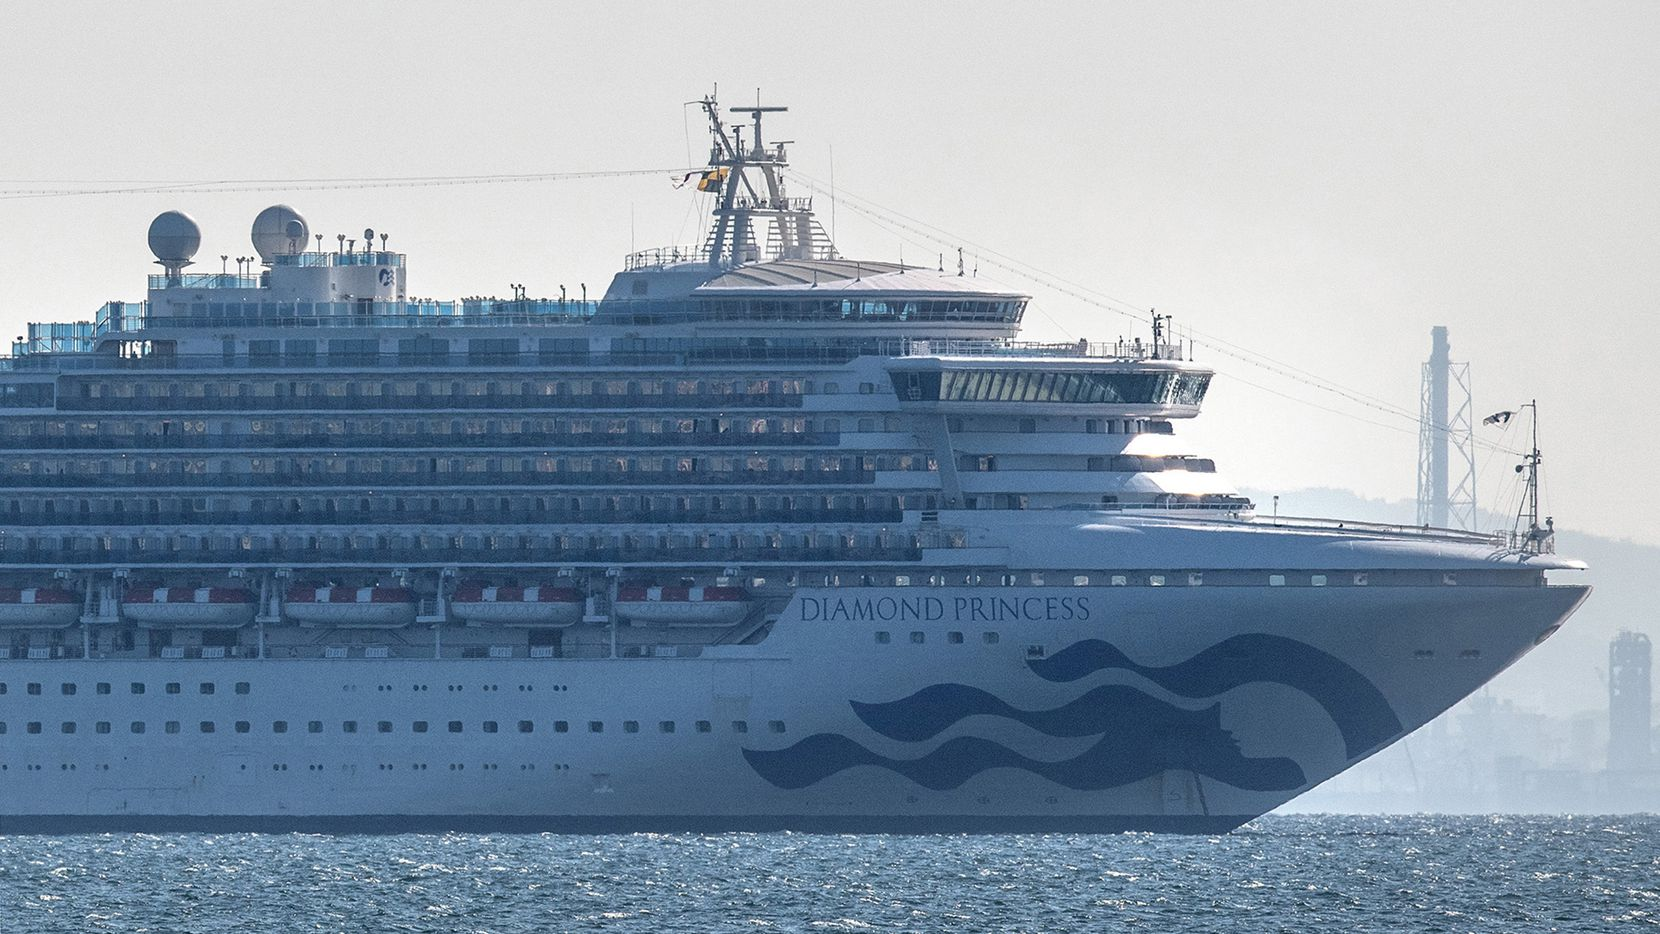 The Diamond Princess cruise ship docked in Japan after an outbreak of coronavirus on the ship.